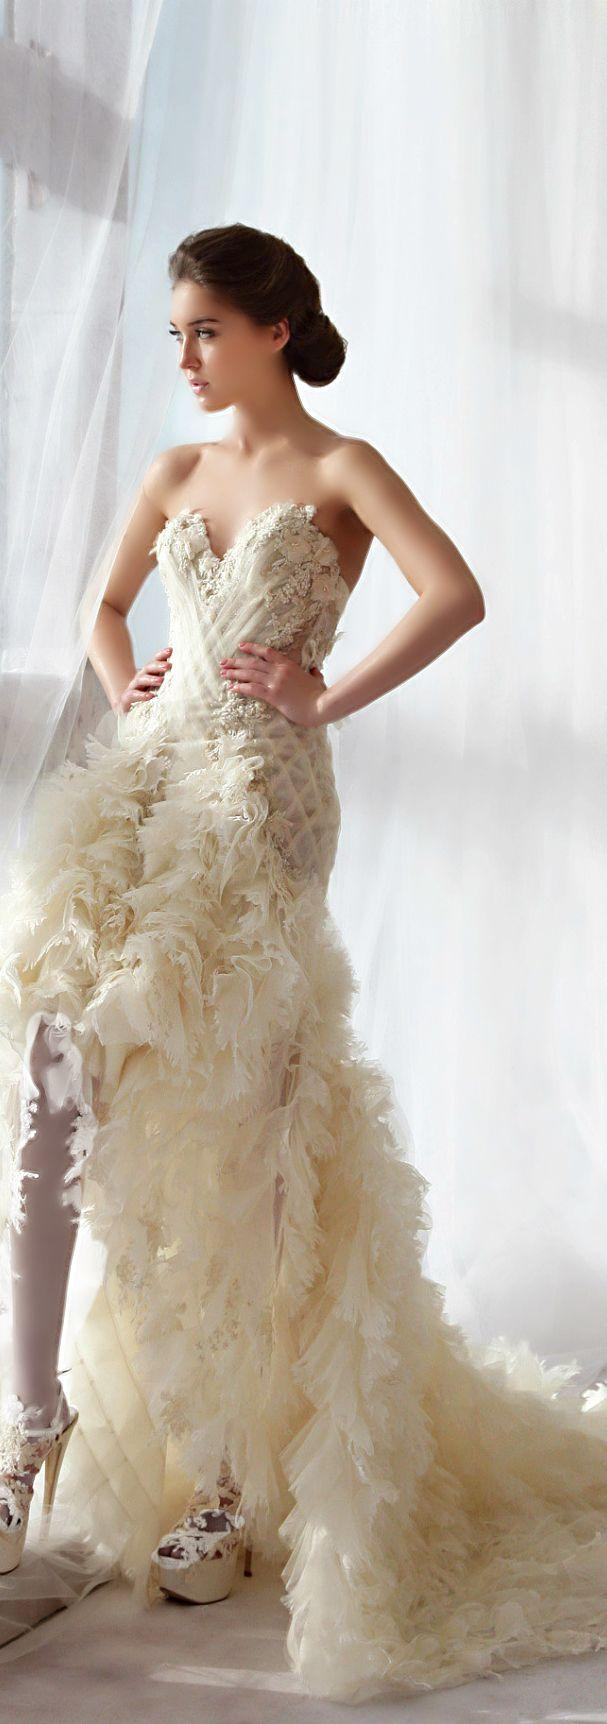 Wedding dresses wedding dress ziad nakad 2026724 weddbook for Ziad nakad wedding dresses